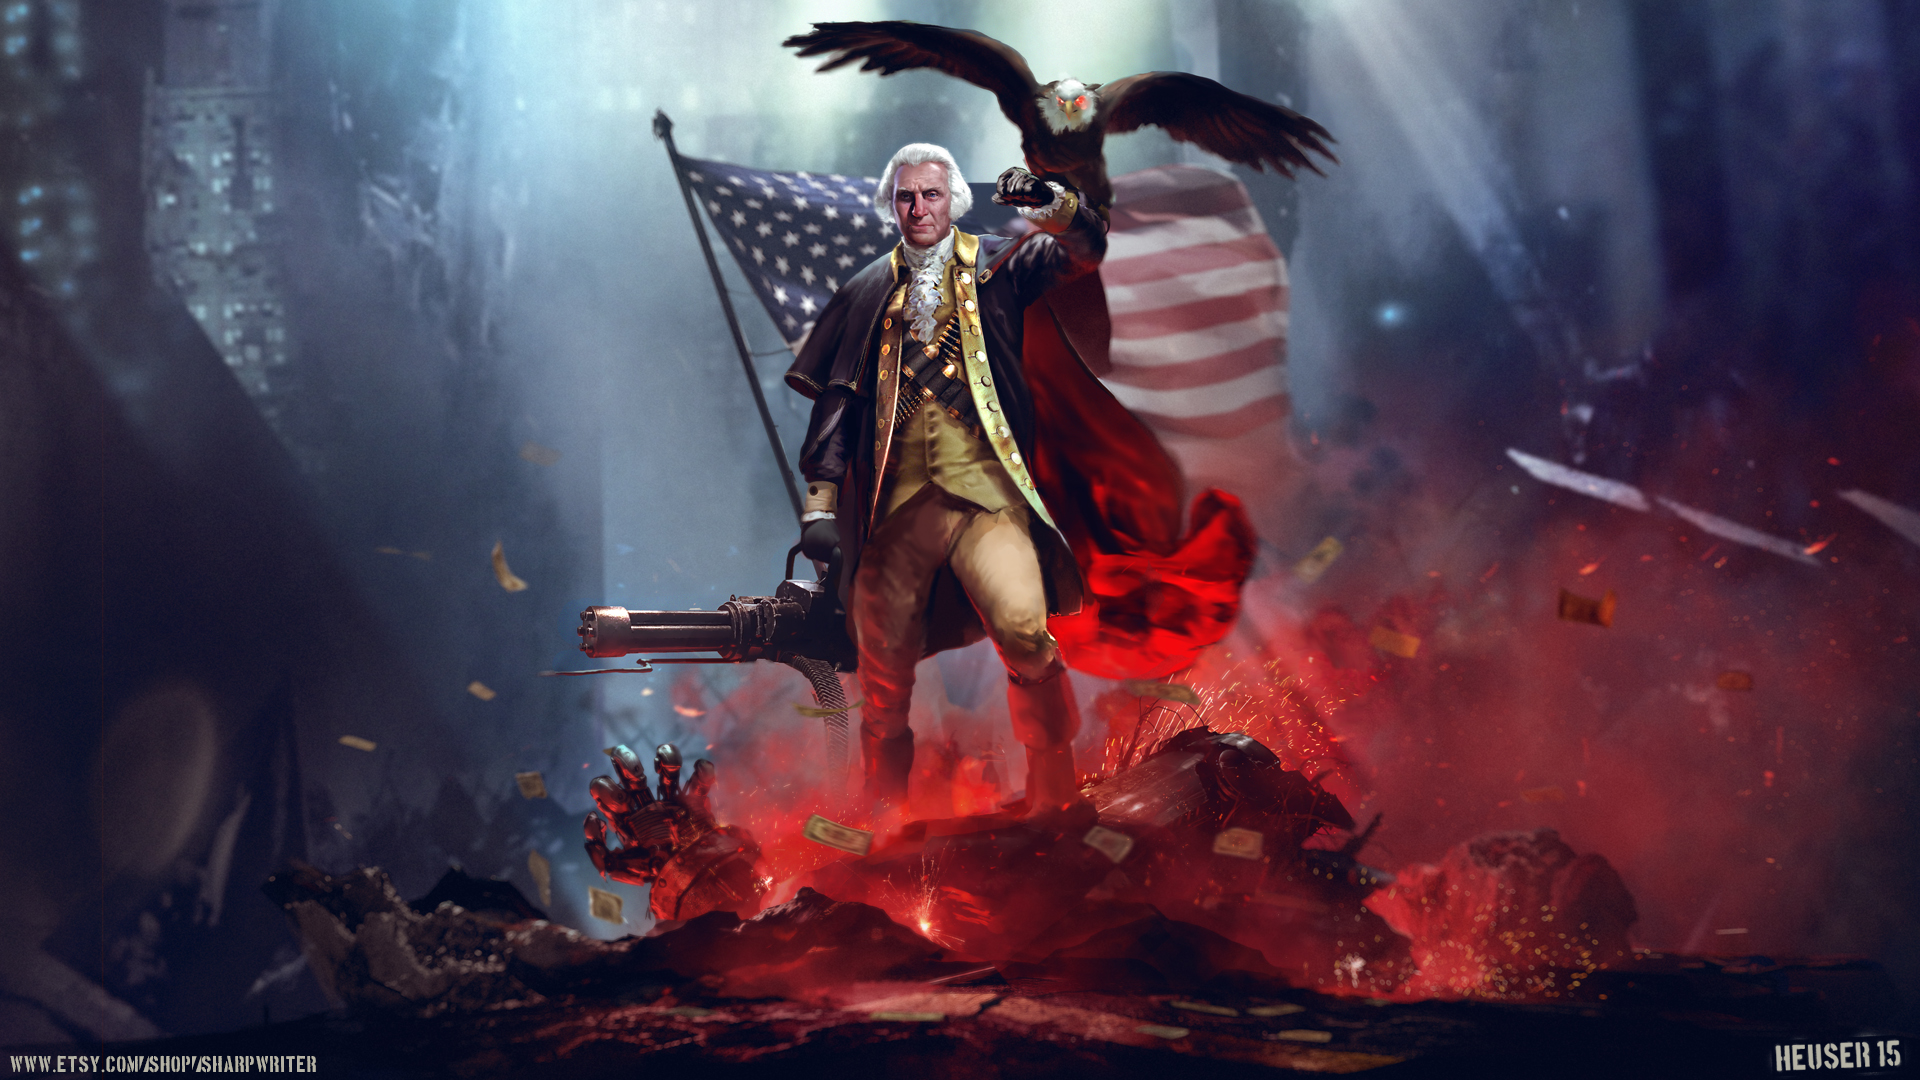 George F***ing Washington | New Challenge for Fifth Edition